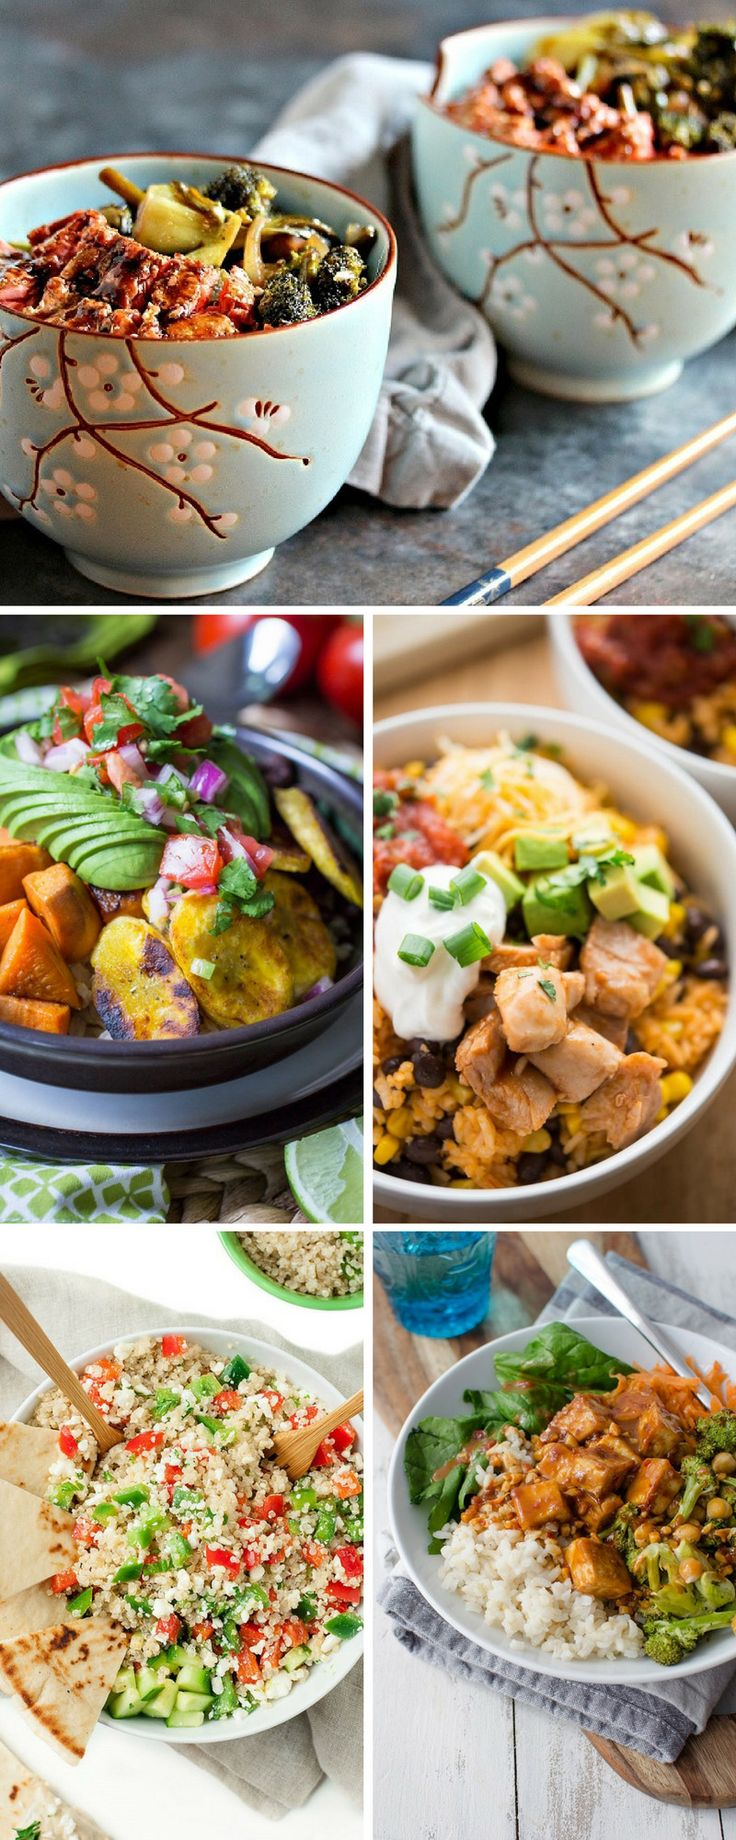 You will find these recipes extremely helpful if you're willing to lose weight…